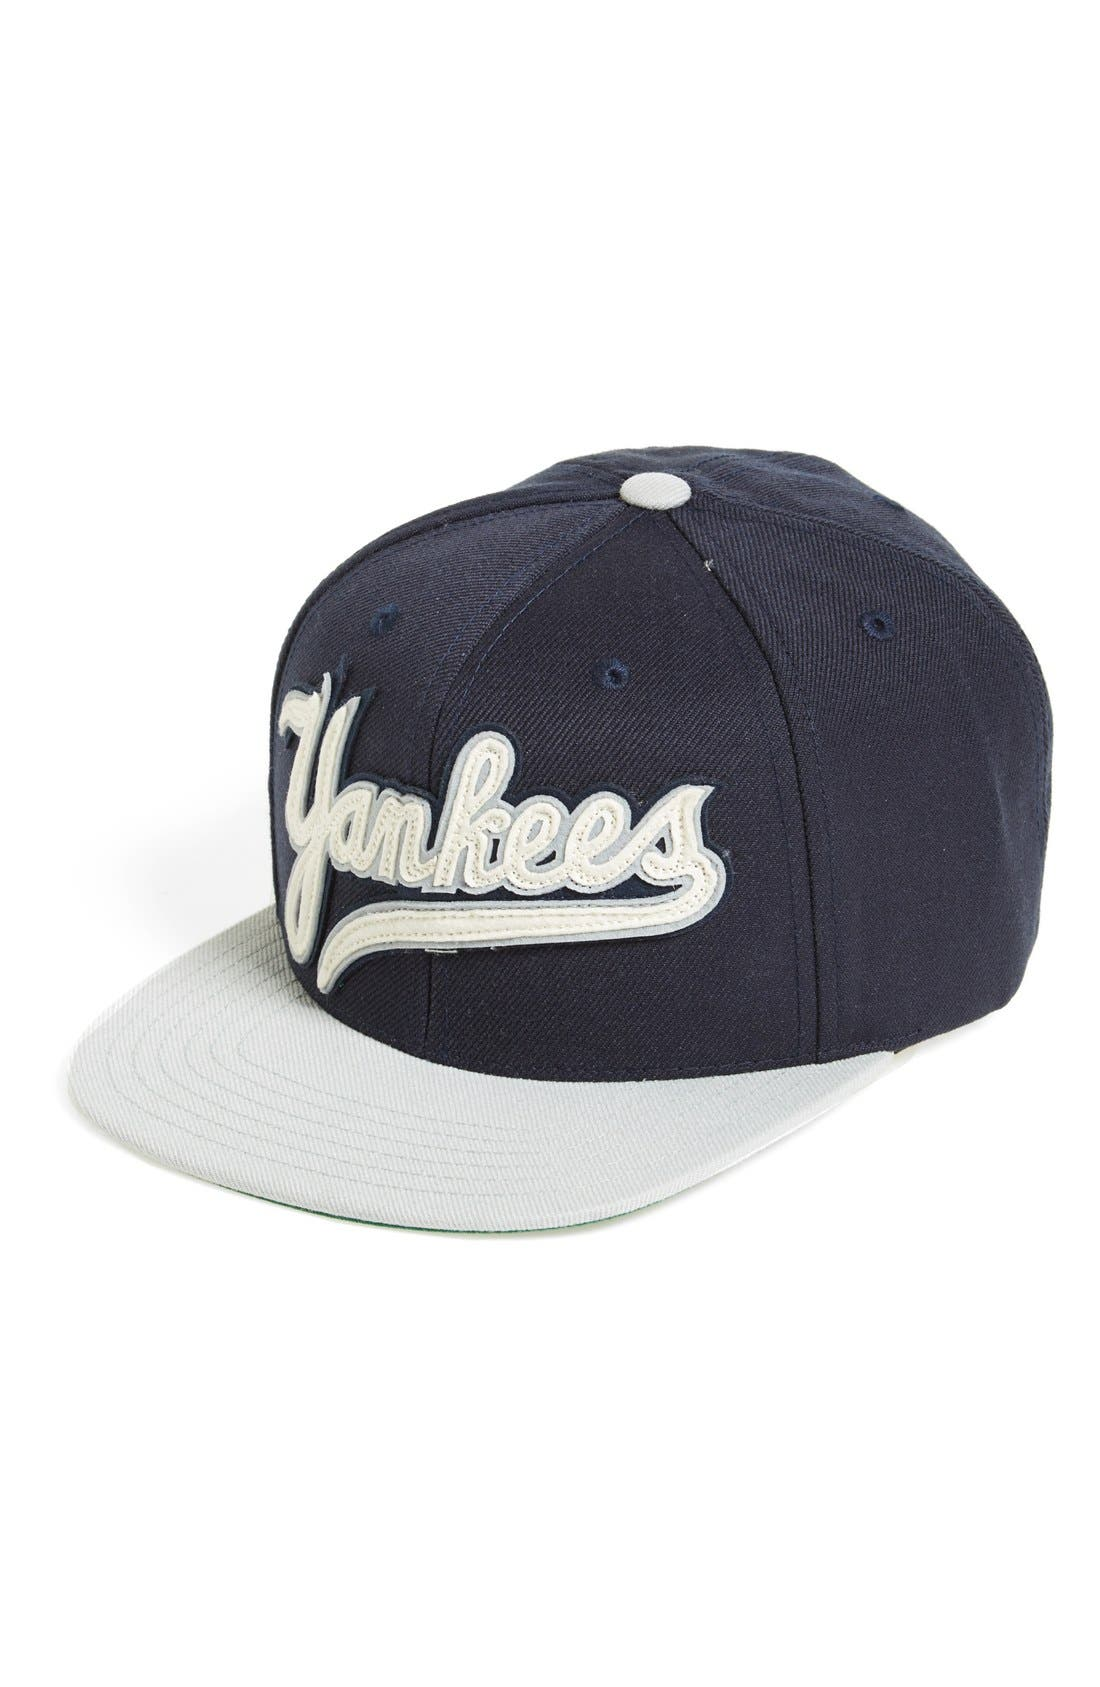 Main Image - American Needle 'New York Yankees - Flynn' Snapback Cap